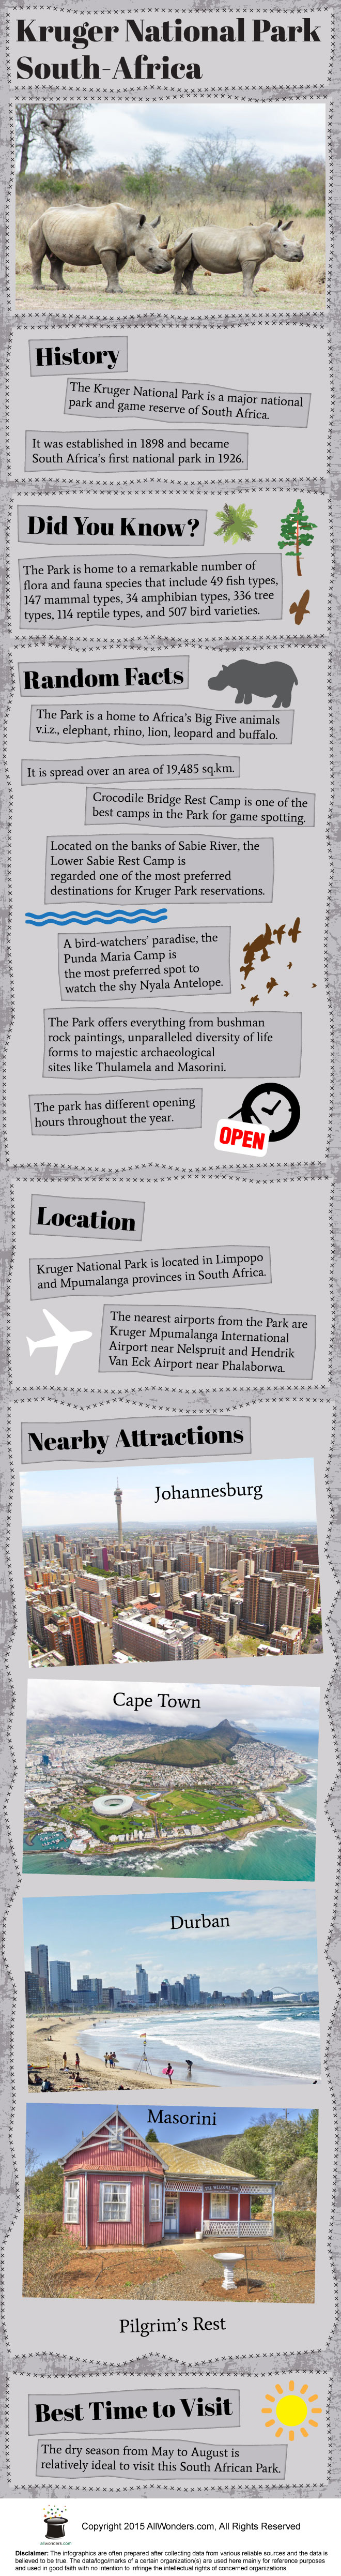 Kruger National Park Infographic